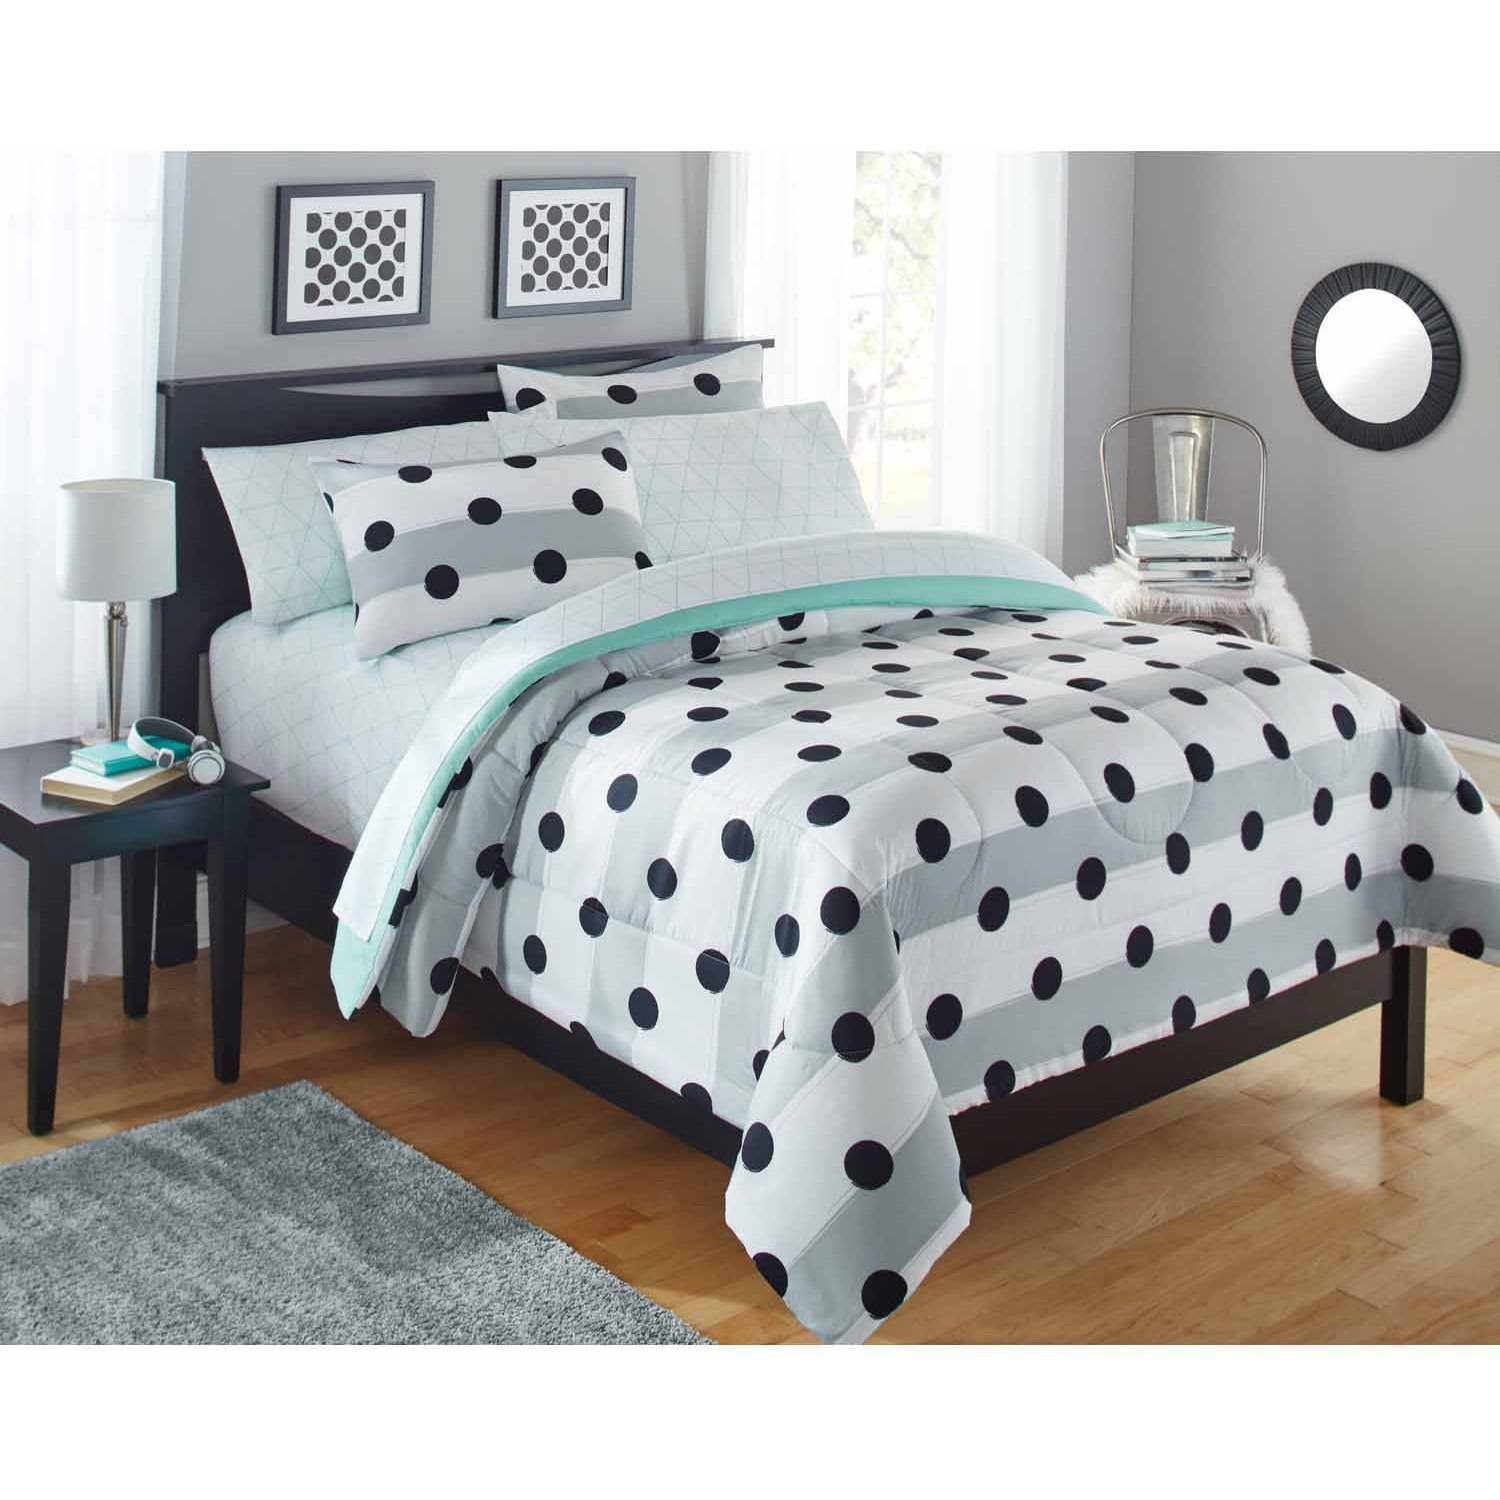 Your Zone Gray Stripe Dot Bed In A Bag Bedding Set W Reversible